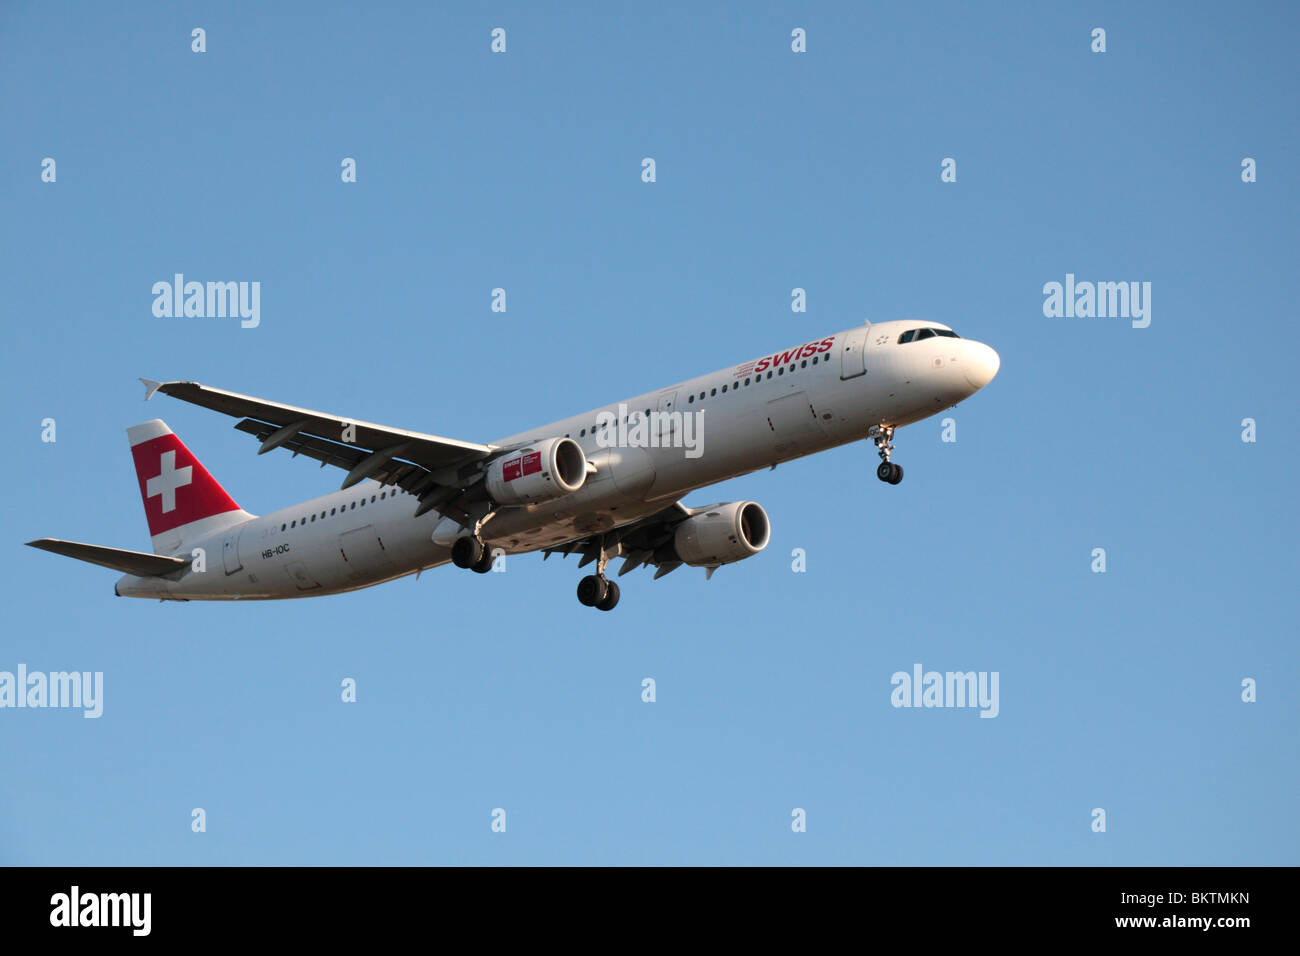 A Swissair Airbus A321-111 coming in to land at London Heathrow, UK.  August 2009. (HB-IOC) - Stock Image